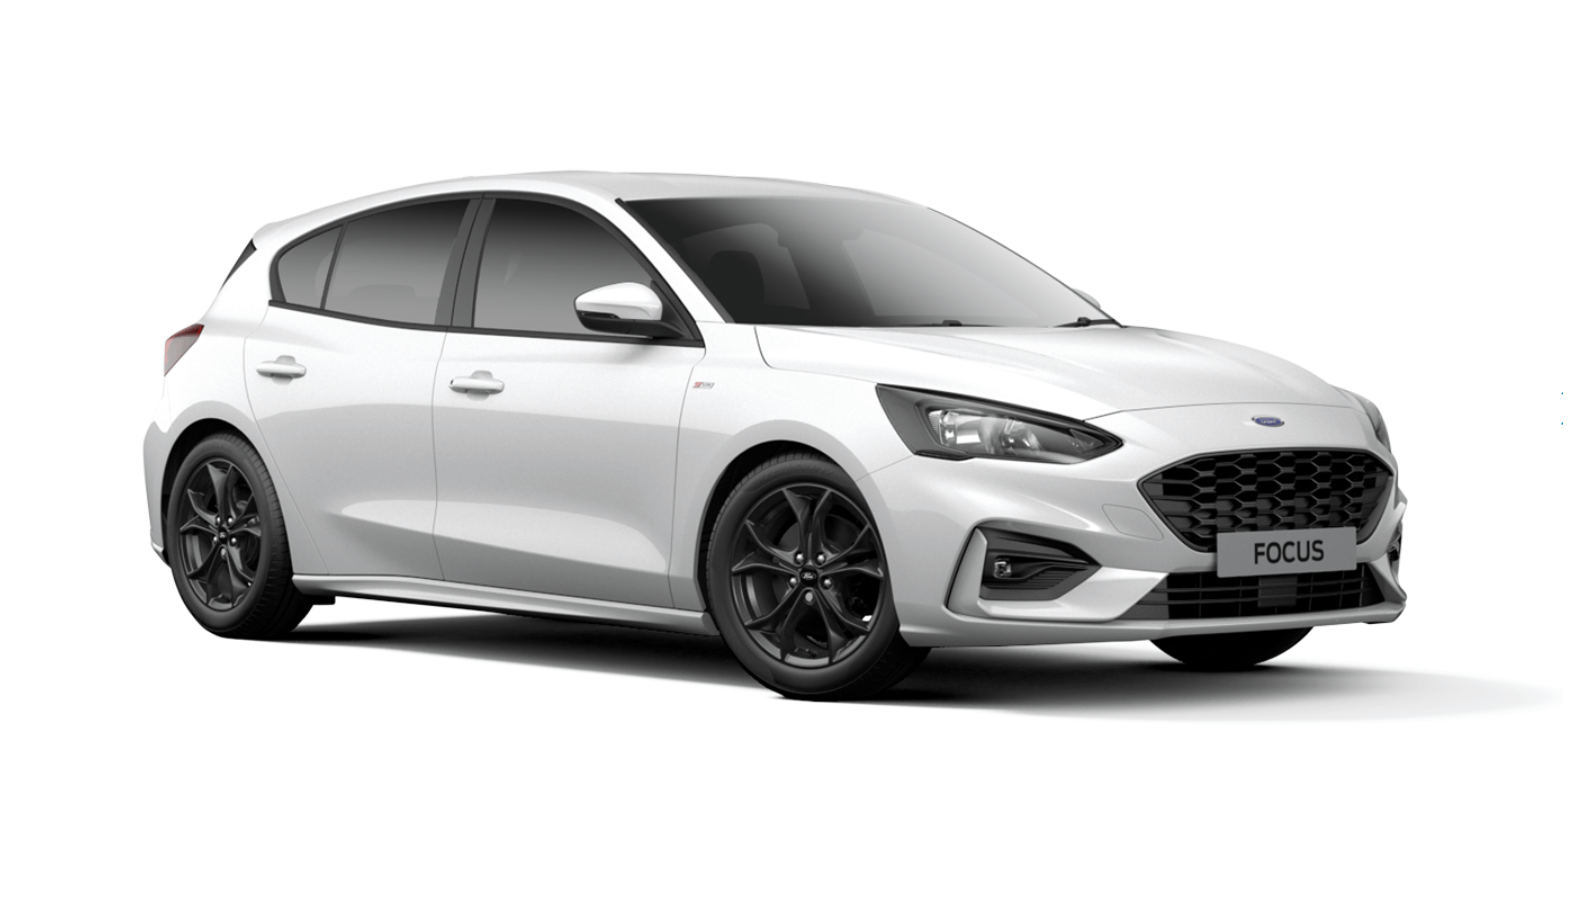 Ford Focus ST-Line 1.0 EcoBoost 125PS Hybrid